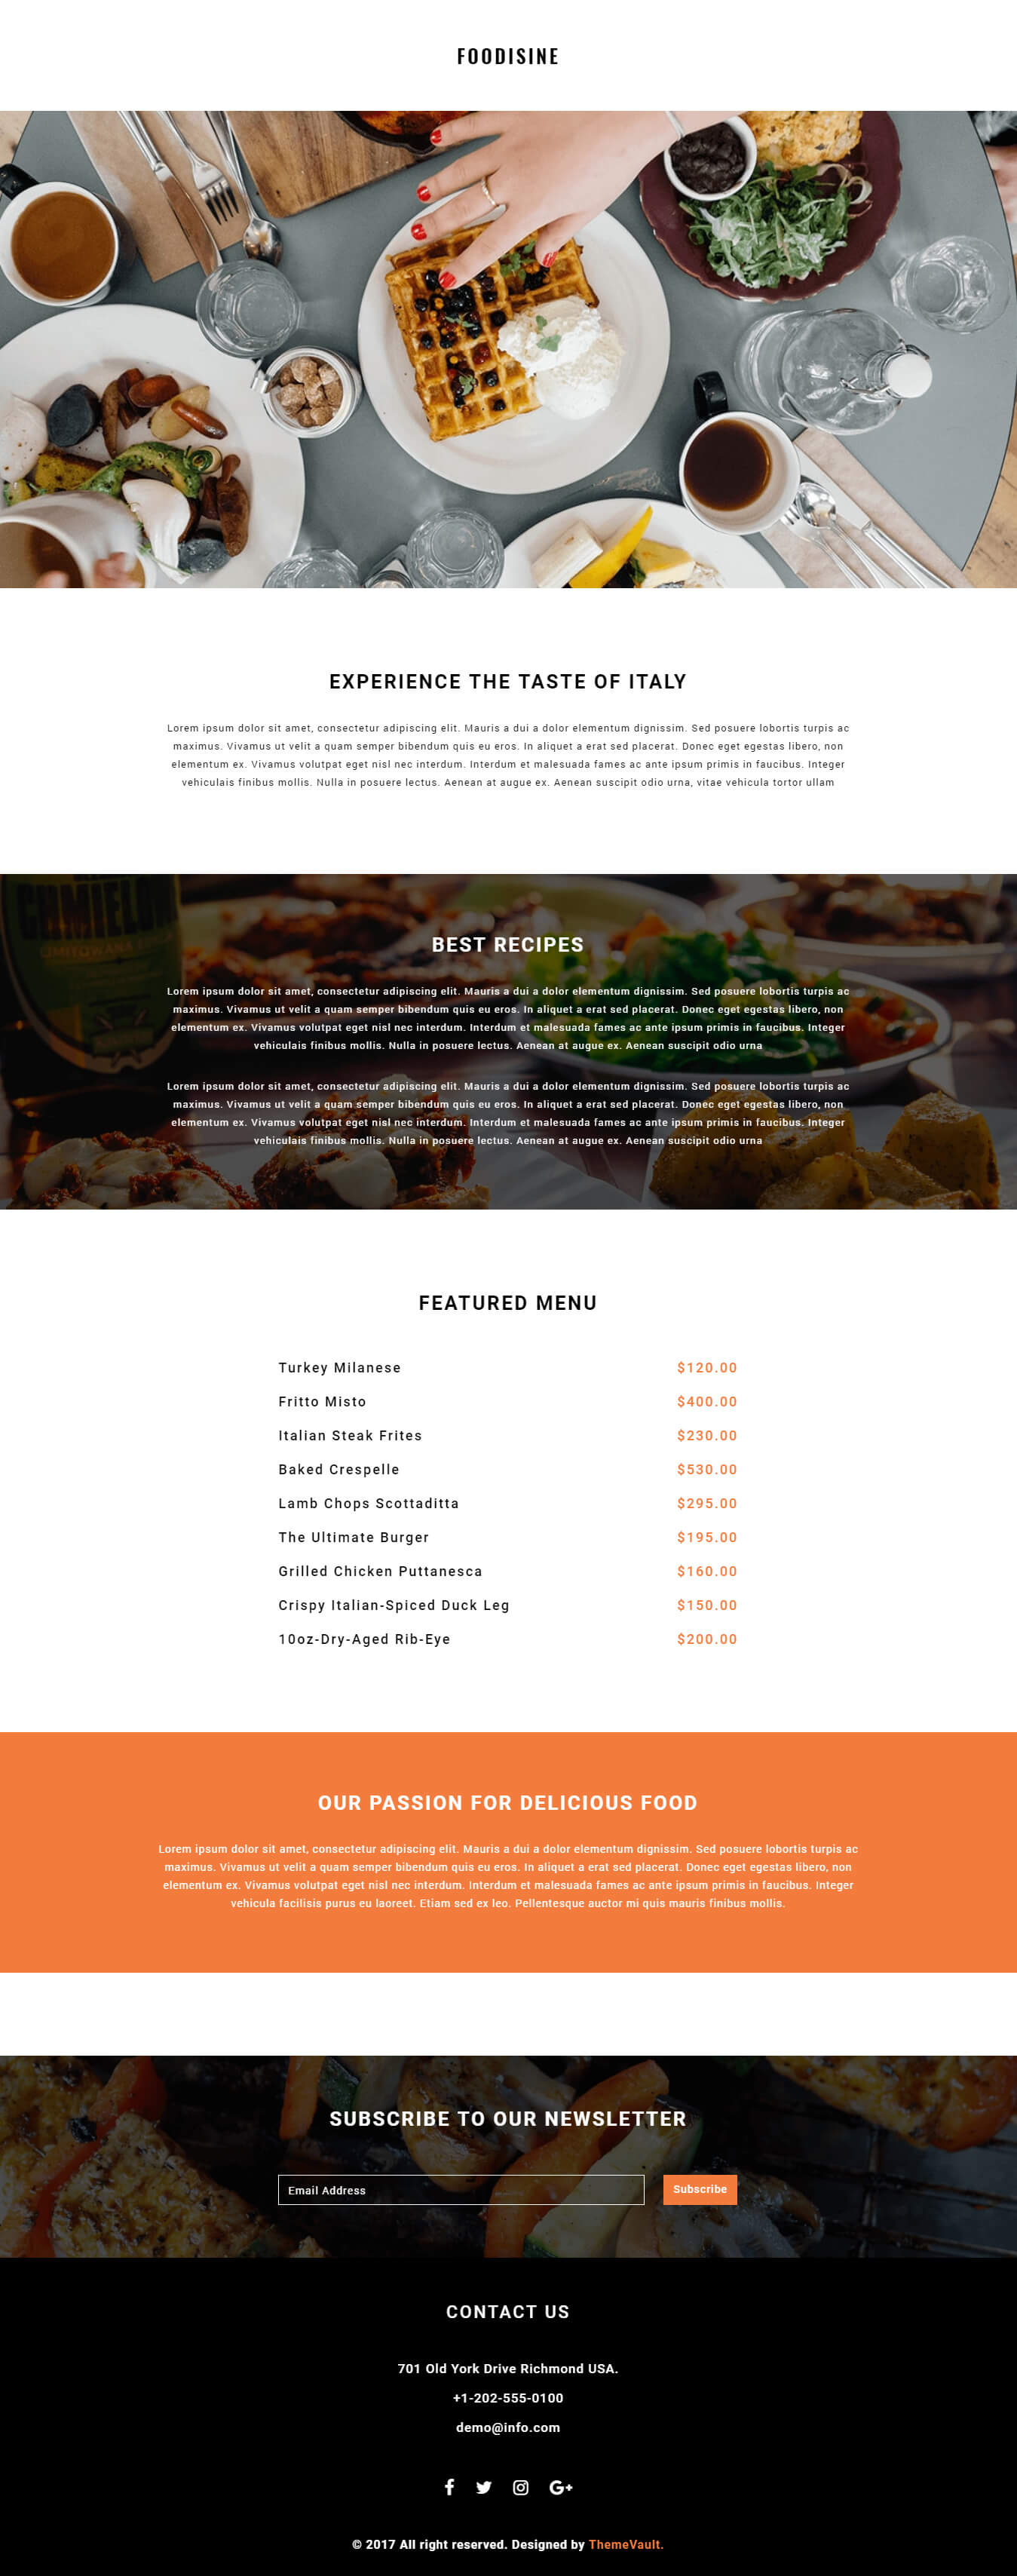 Foodisine Free Newsletter Design Templates Themevault